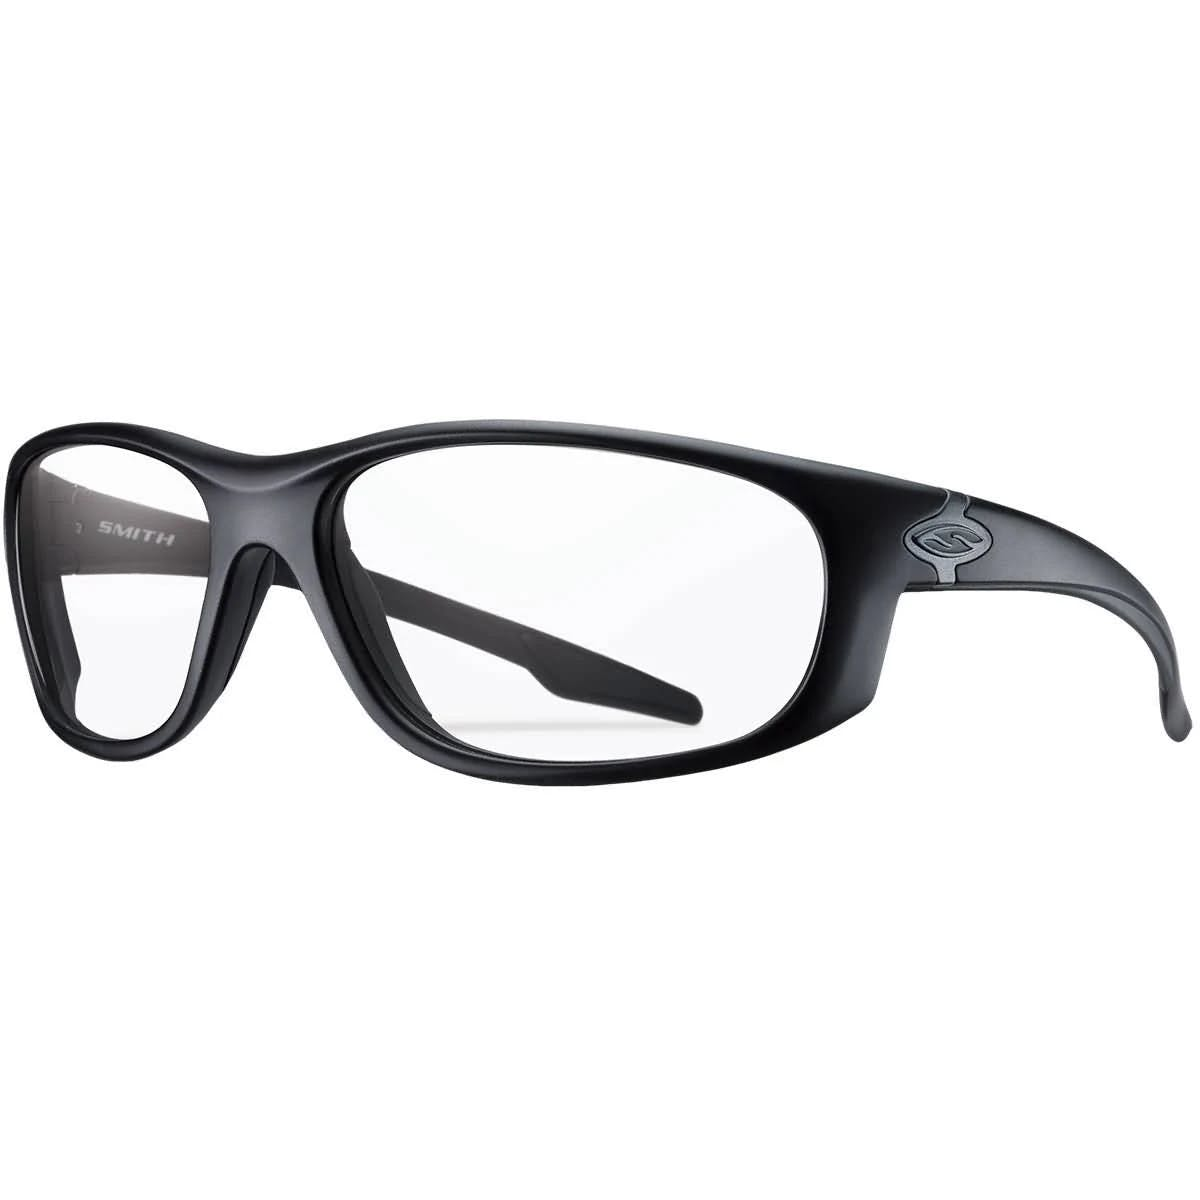 Smith Chamber Elite Sunglasses in Black / Clear